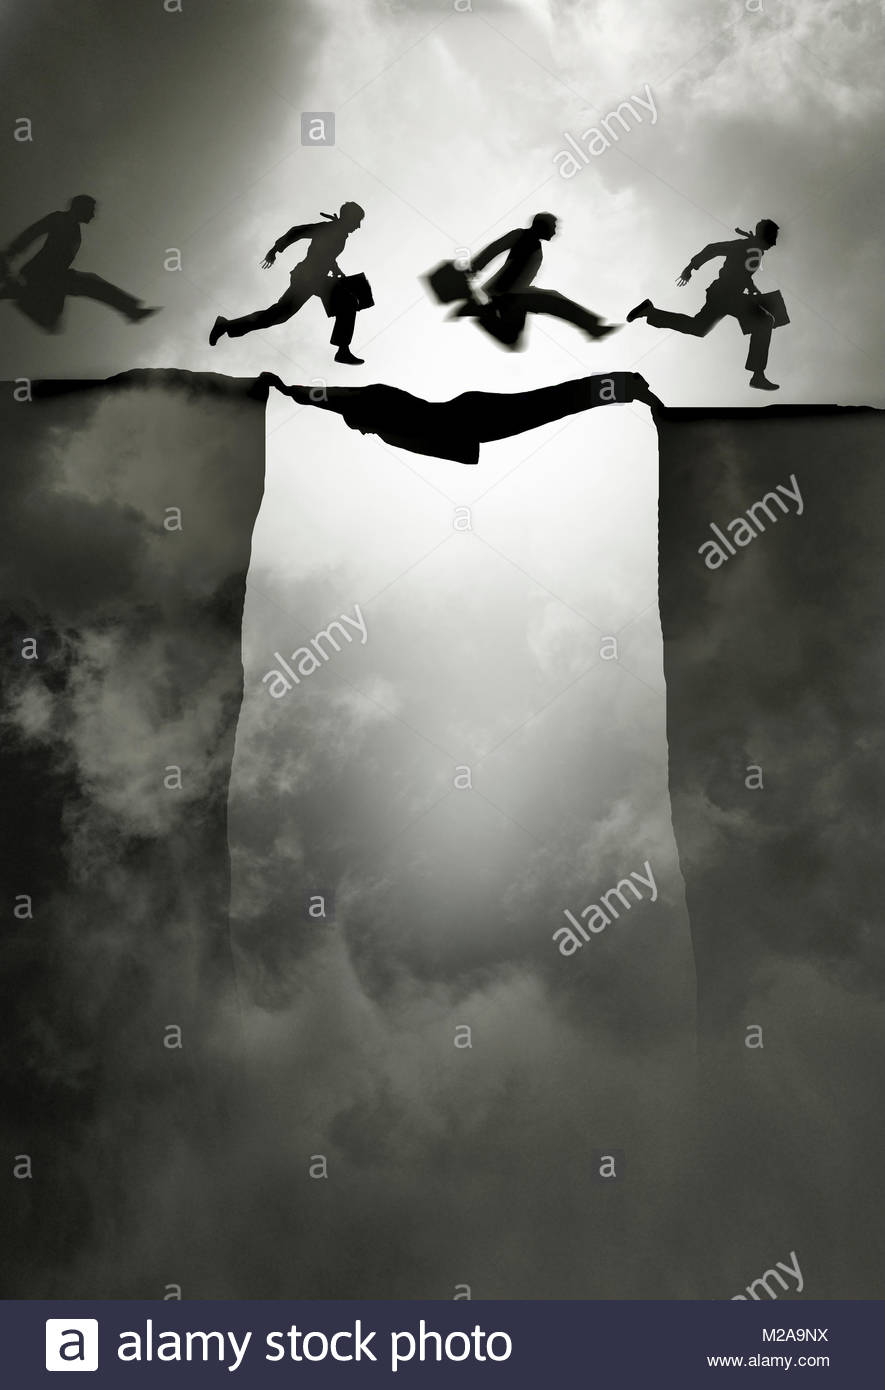 Man making a bridge for colleagues to cross gap - Stock Image